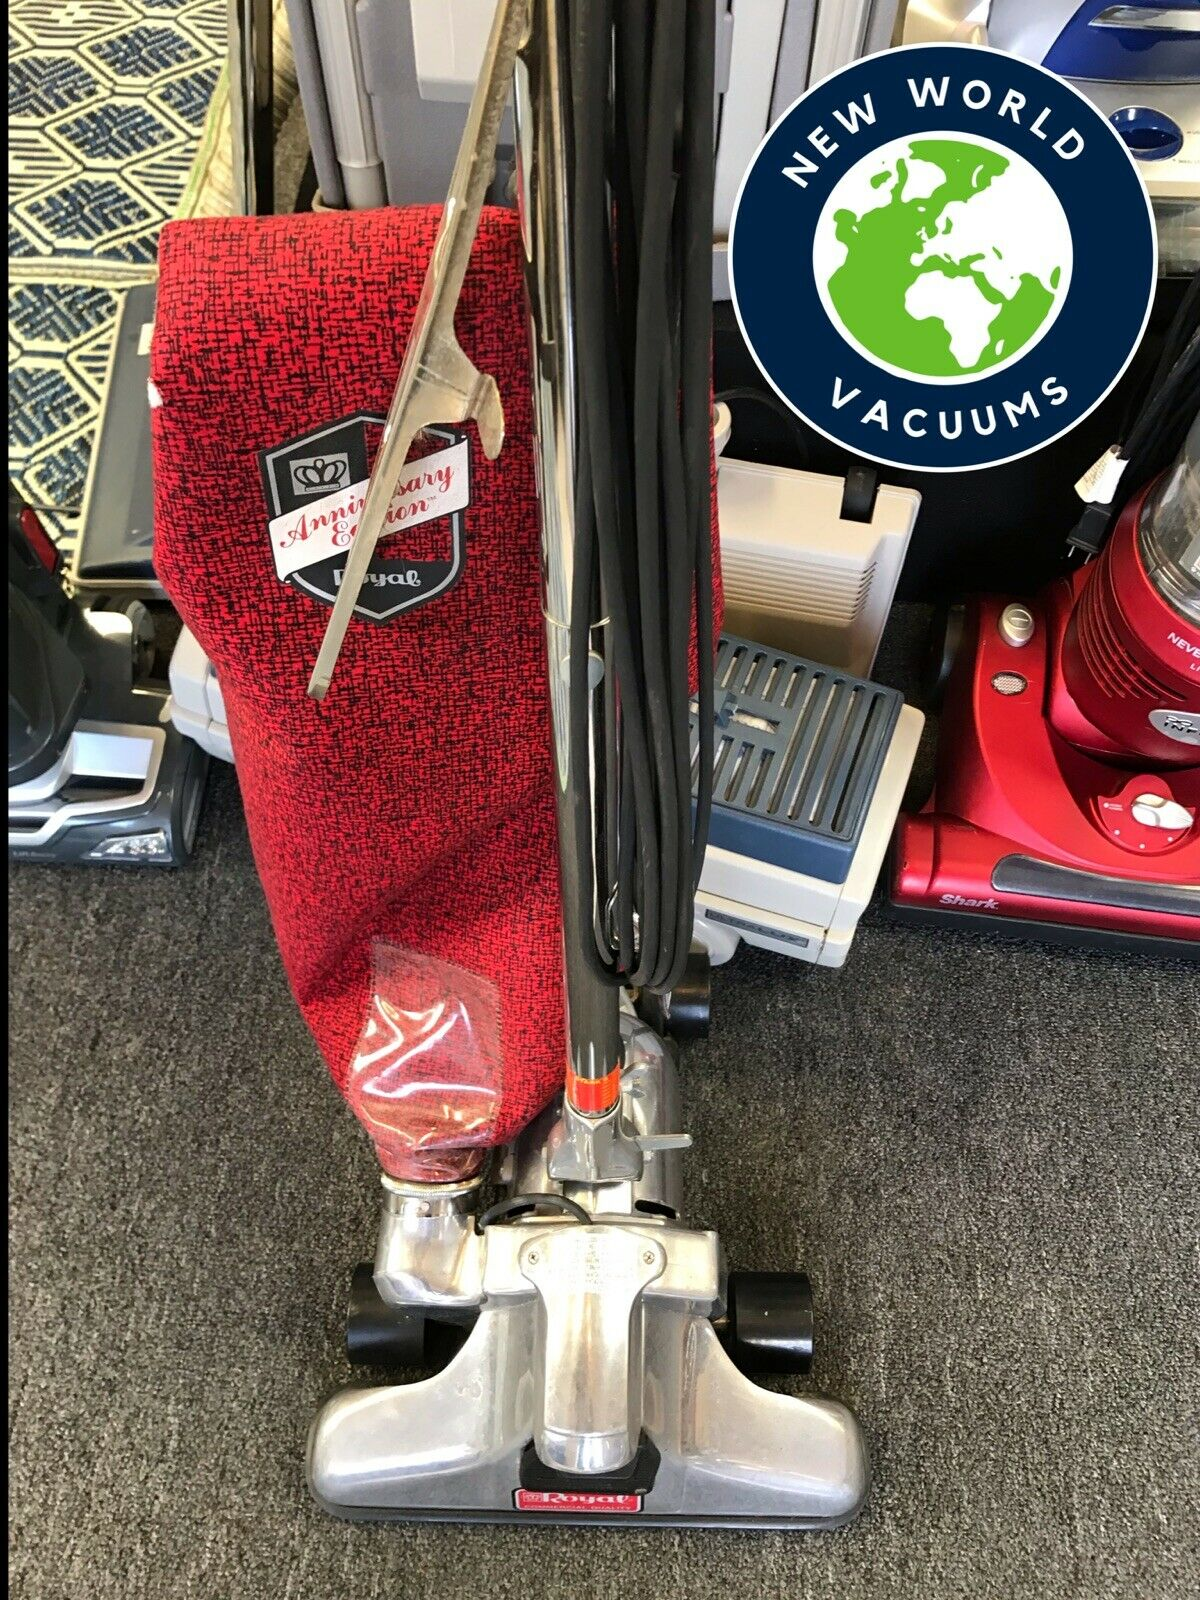 Royal Commercial Quality Anniversary Edition Upright Vacuum Cleaner